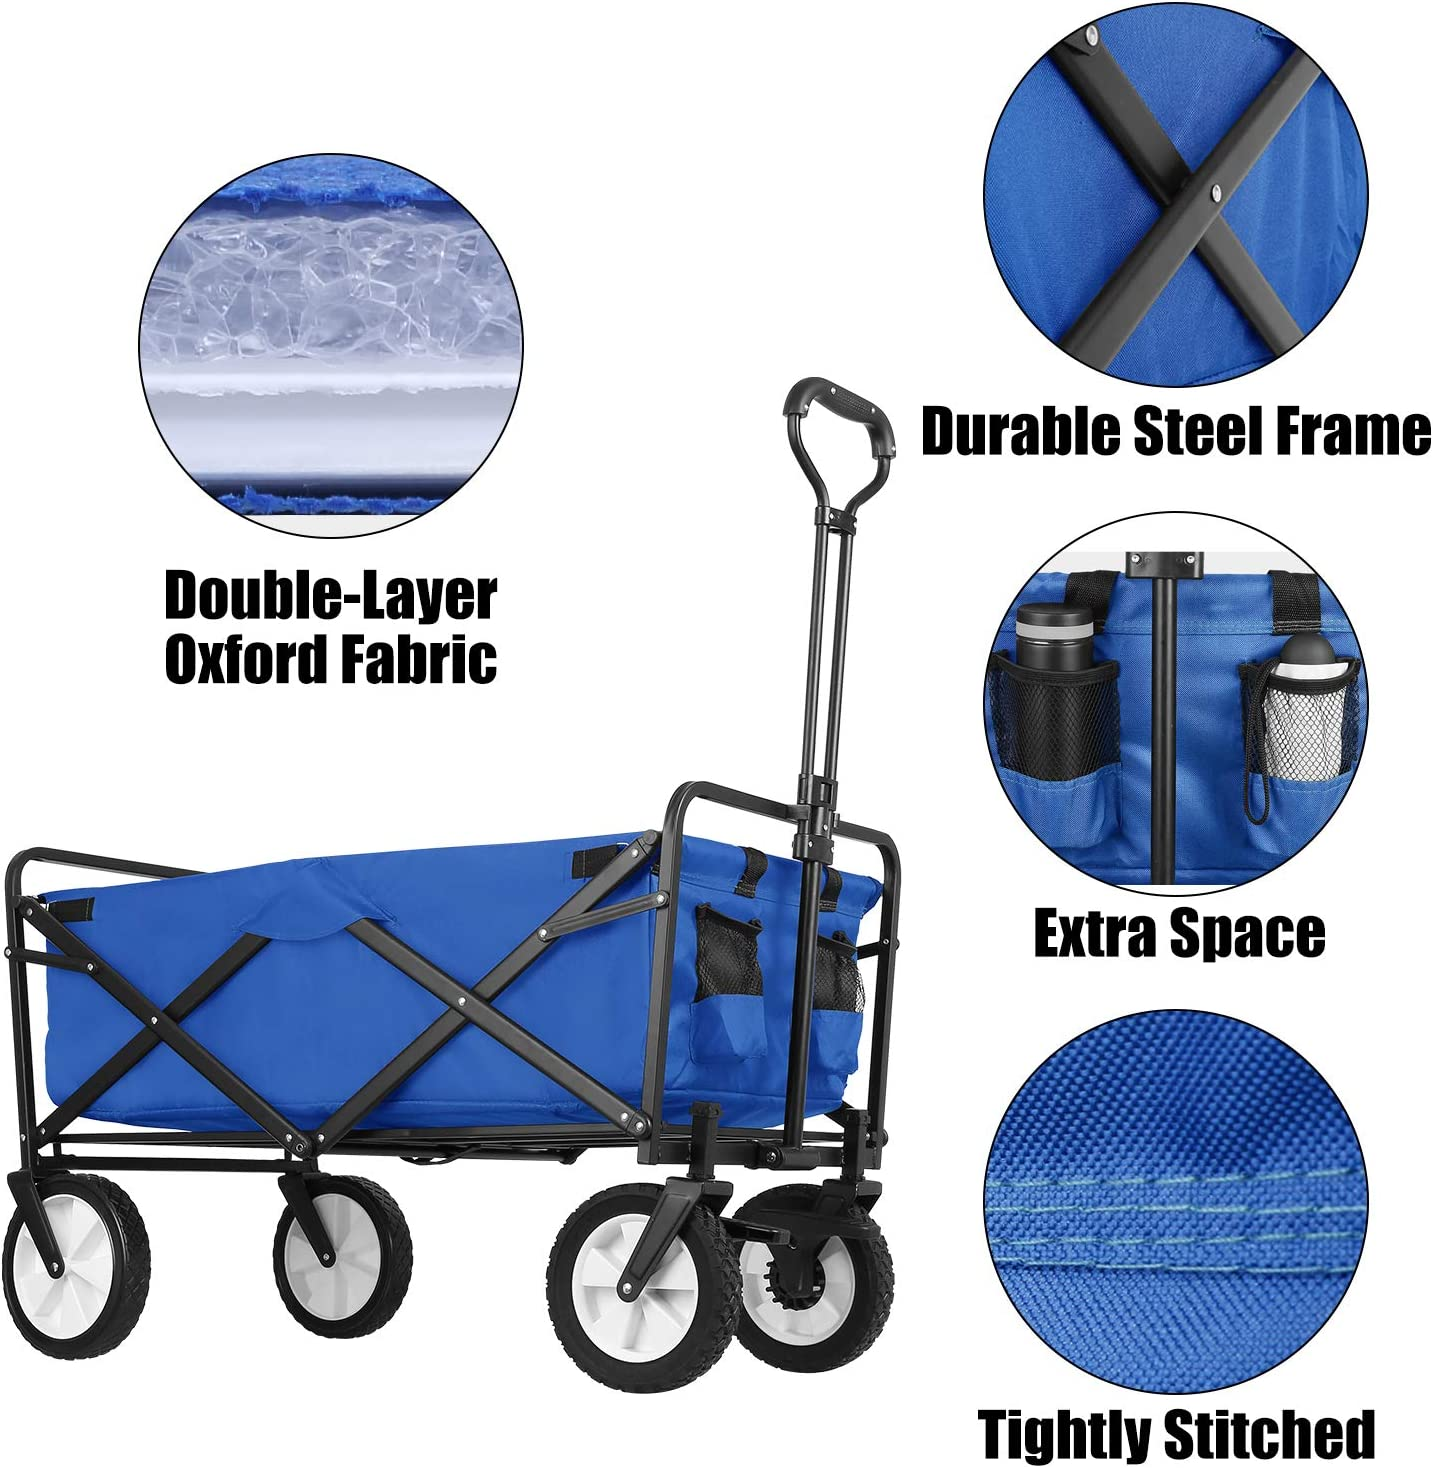 Heavy Duty Folding Outdoor Garden Cart Double Fabric SNAN Collapsible Utility Wagon Sports Rubber Wheels W//Brake and Drink Holder Green Suit for Garden Camping Picnic Adjustable Handles